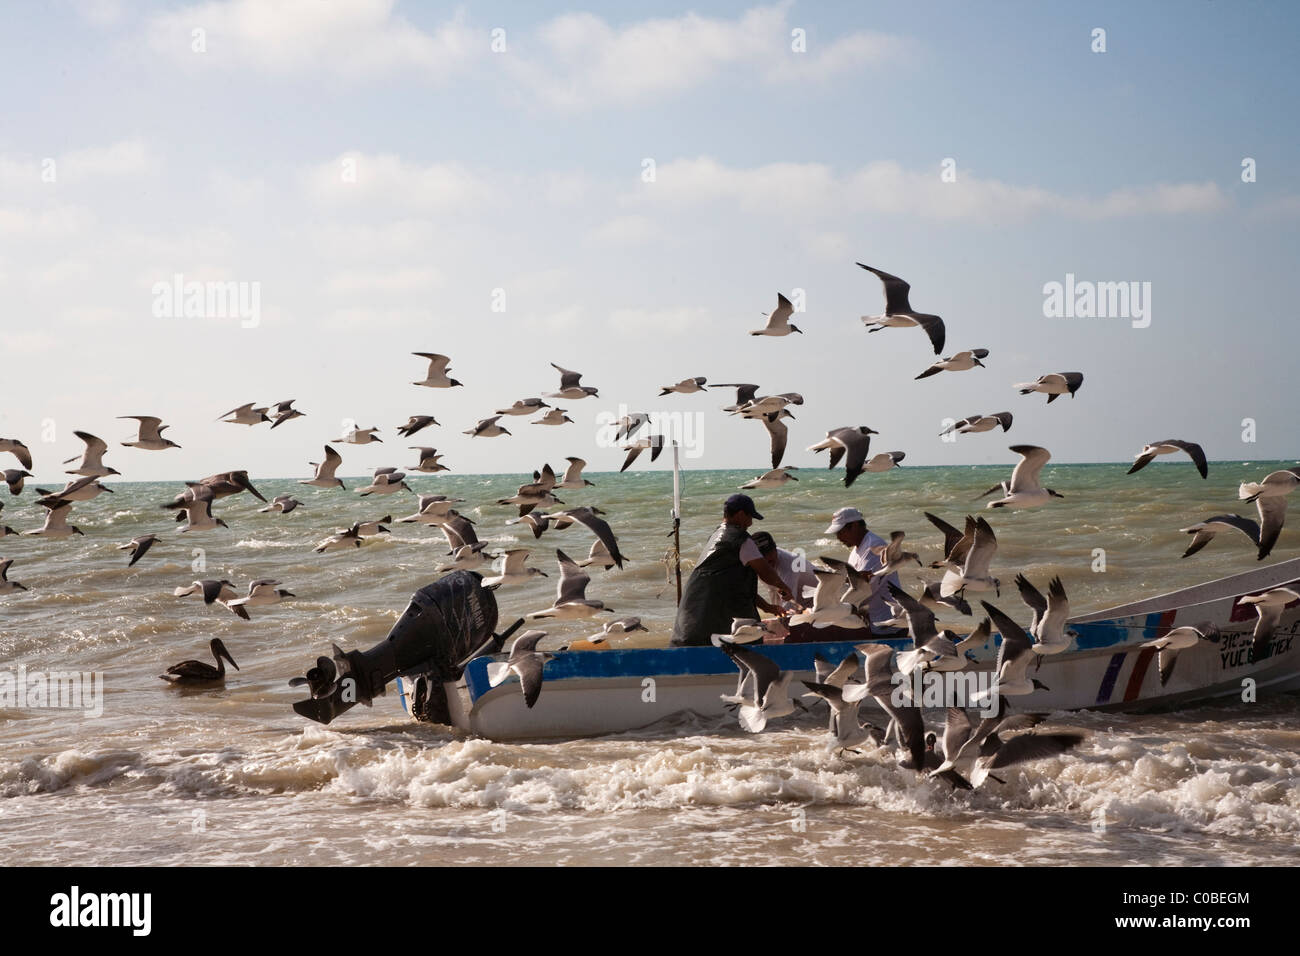 Fishermen returning with catch to Progreso, Yucatan, Mexico - Stock Image